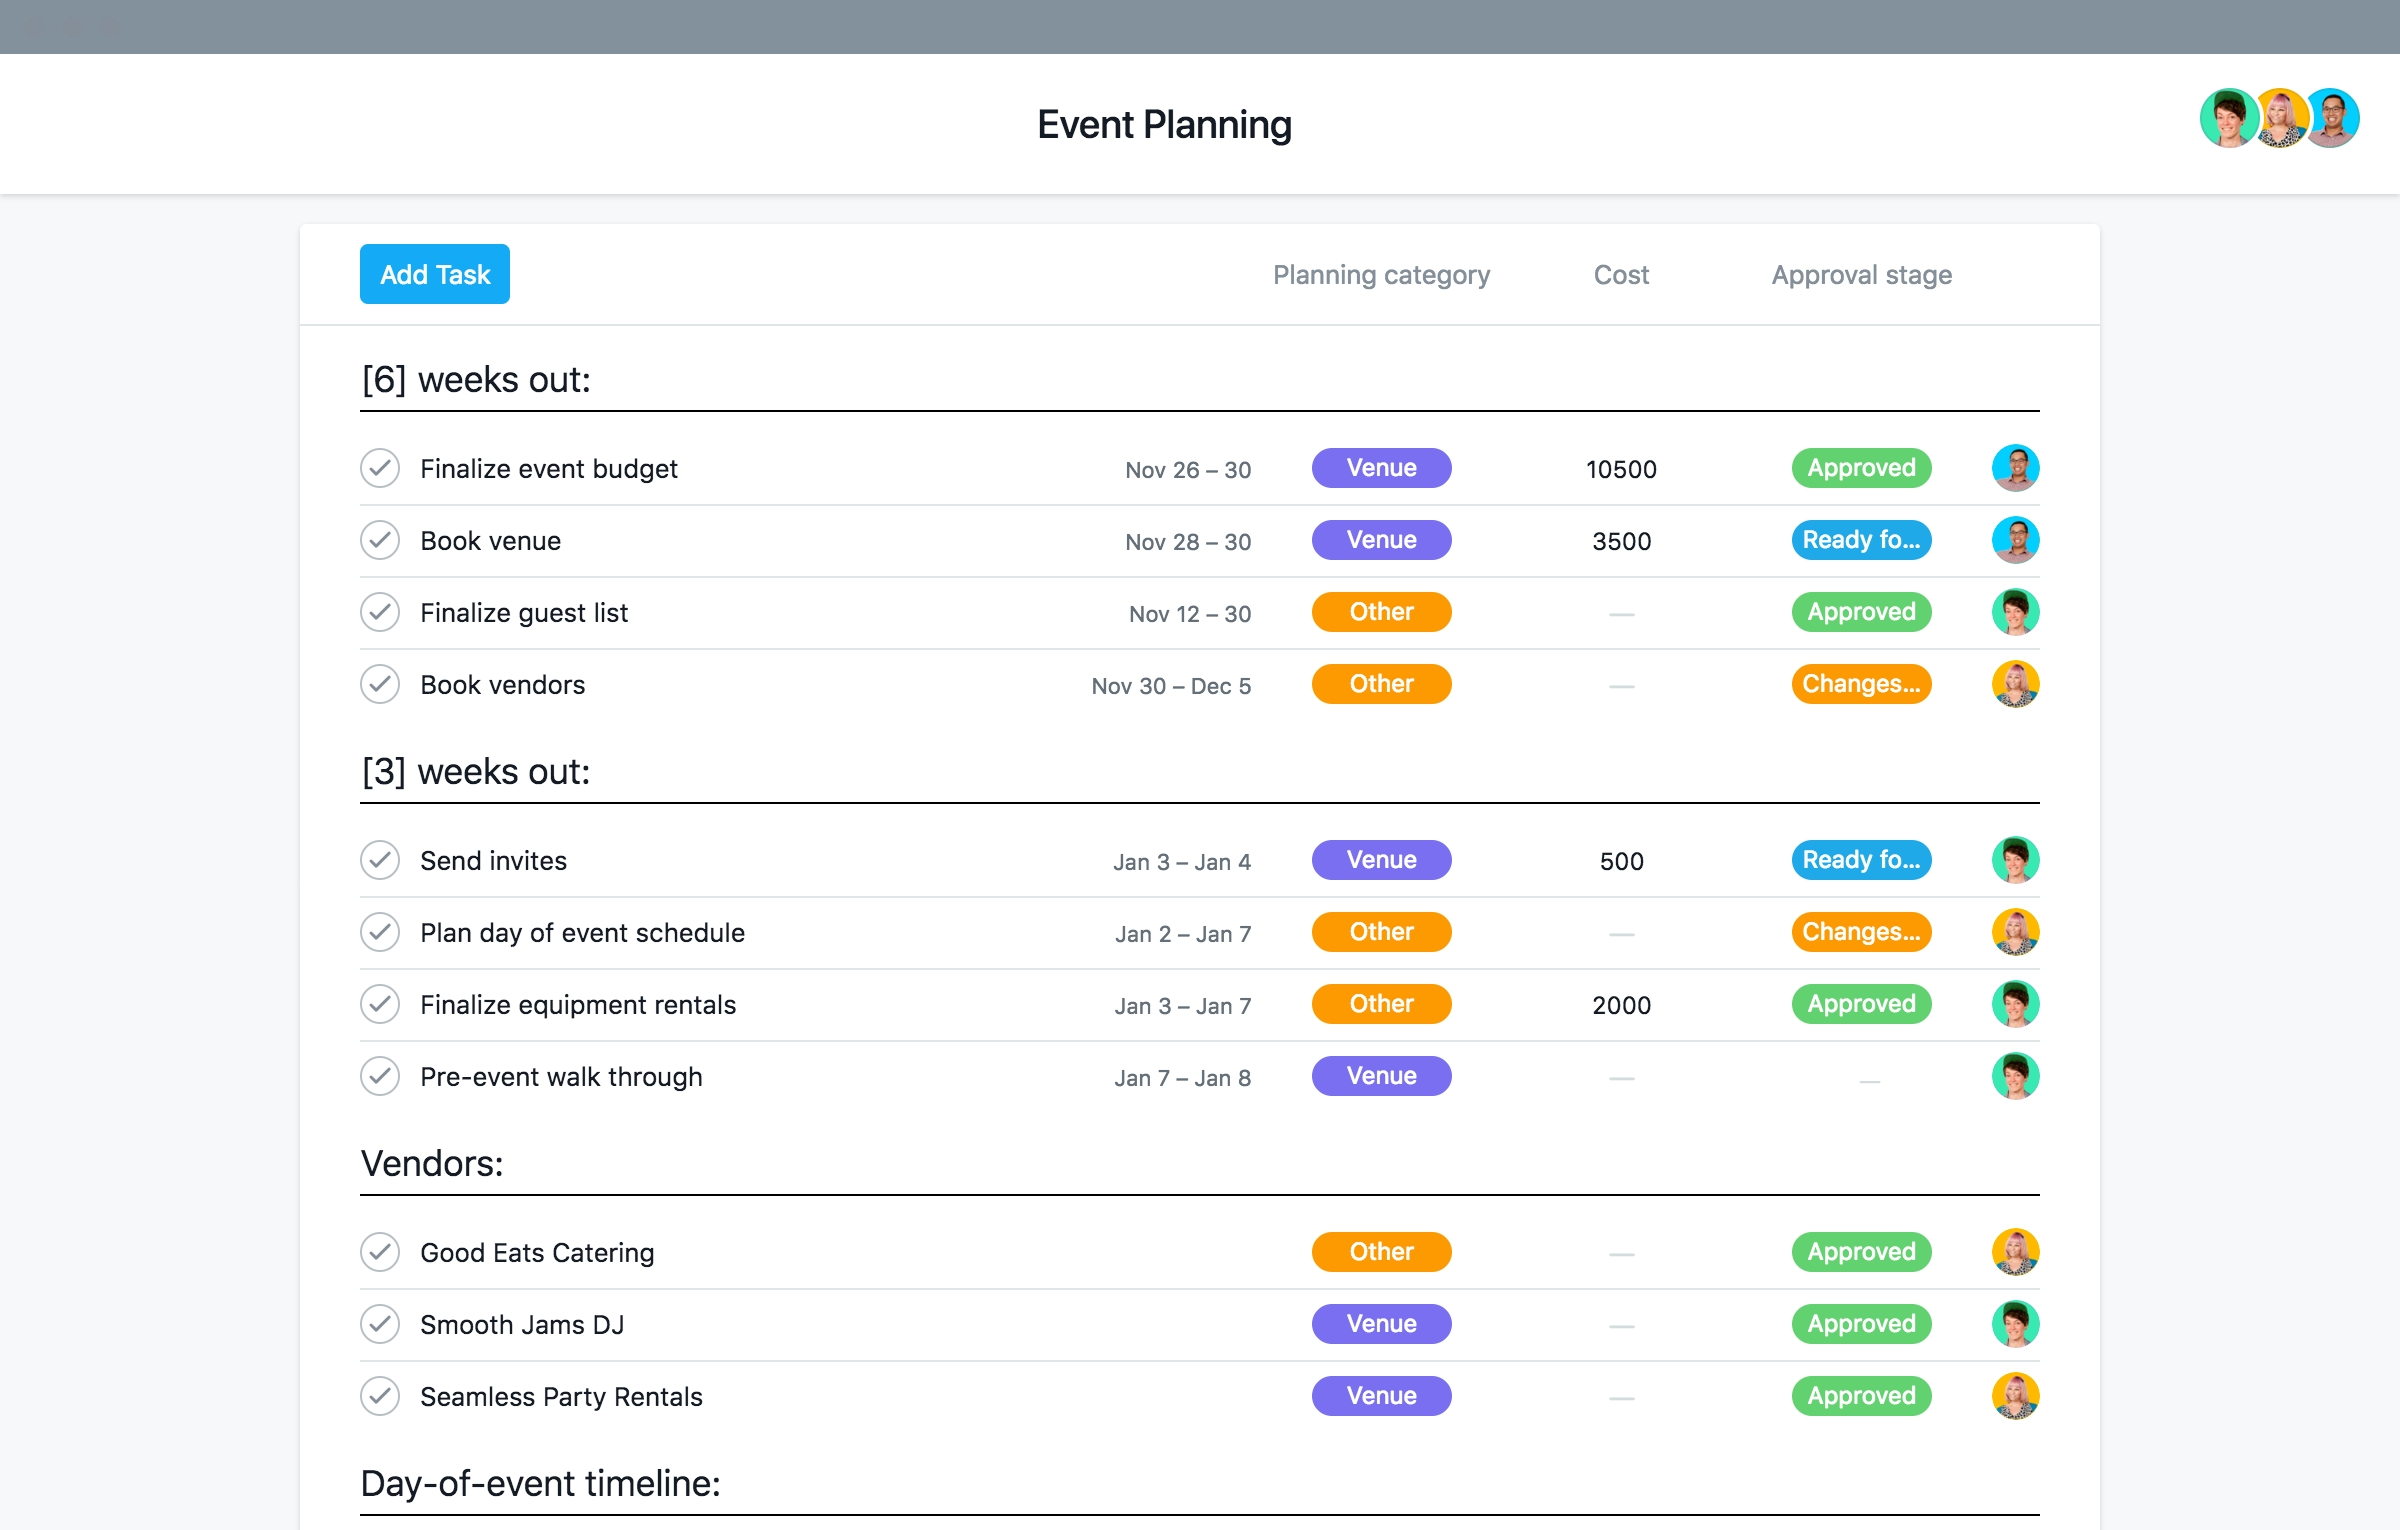 Event Planning Template With Checklists And Timeline · Asana regarding Corporate Event Planning Checklist Template